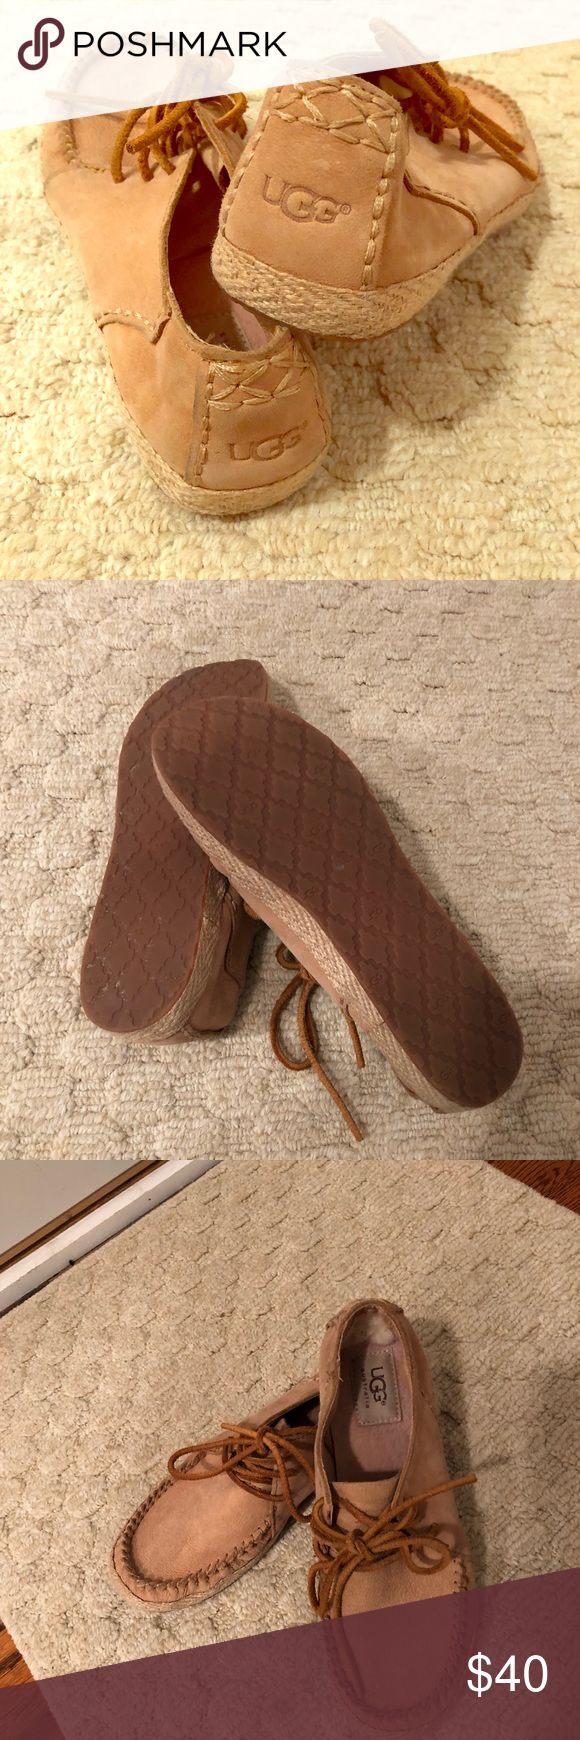 Ugg Sneaker in Classic Comfortable, low profile Ugg Sneaker with leather tie is the ideal go-to shoe. Great for travel or a quick slip on for a trip to the store! Worn only a handful of times (they are a bit too small). Size 7. UGG Shoes Flats & Loafers